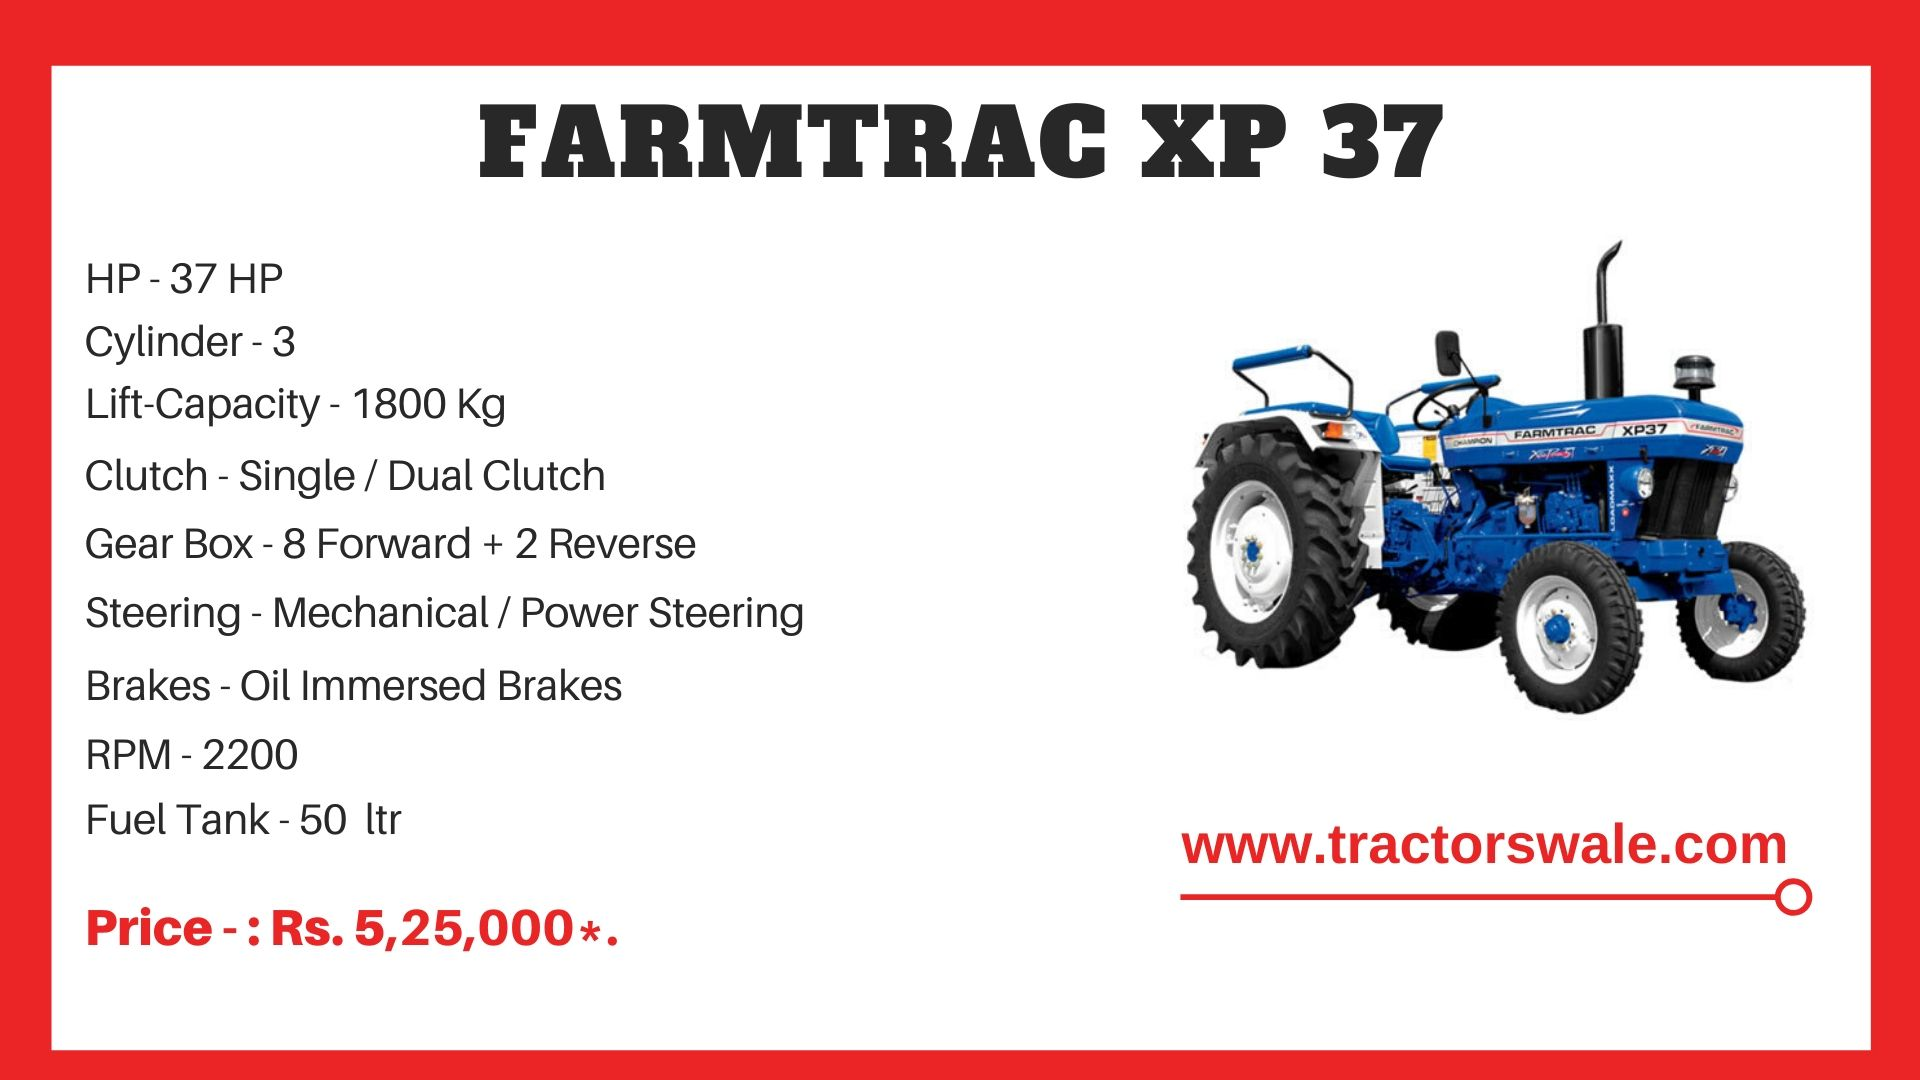 Farmtrac XP 37 tractor price